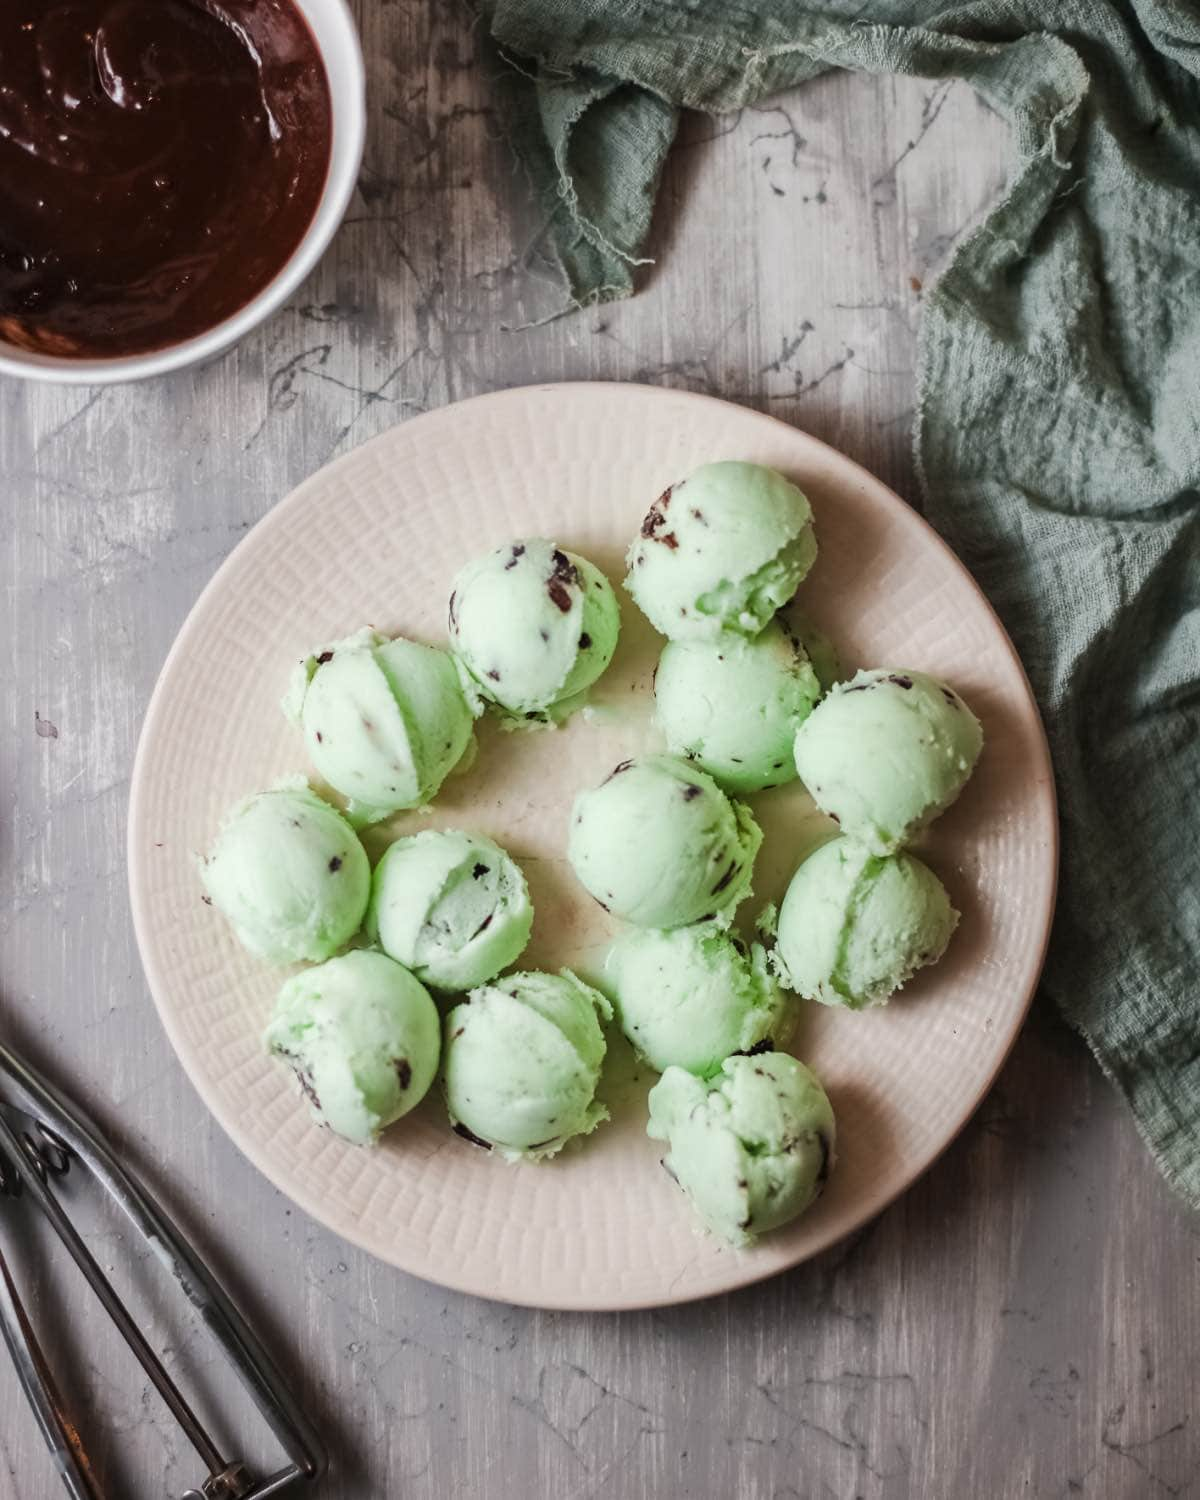 These Mint Chip Ice Cream Bon Bons are homemade ice cream bites covered with chocolate and way better than the ones in the freezer aisle.